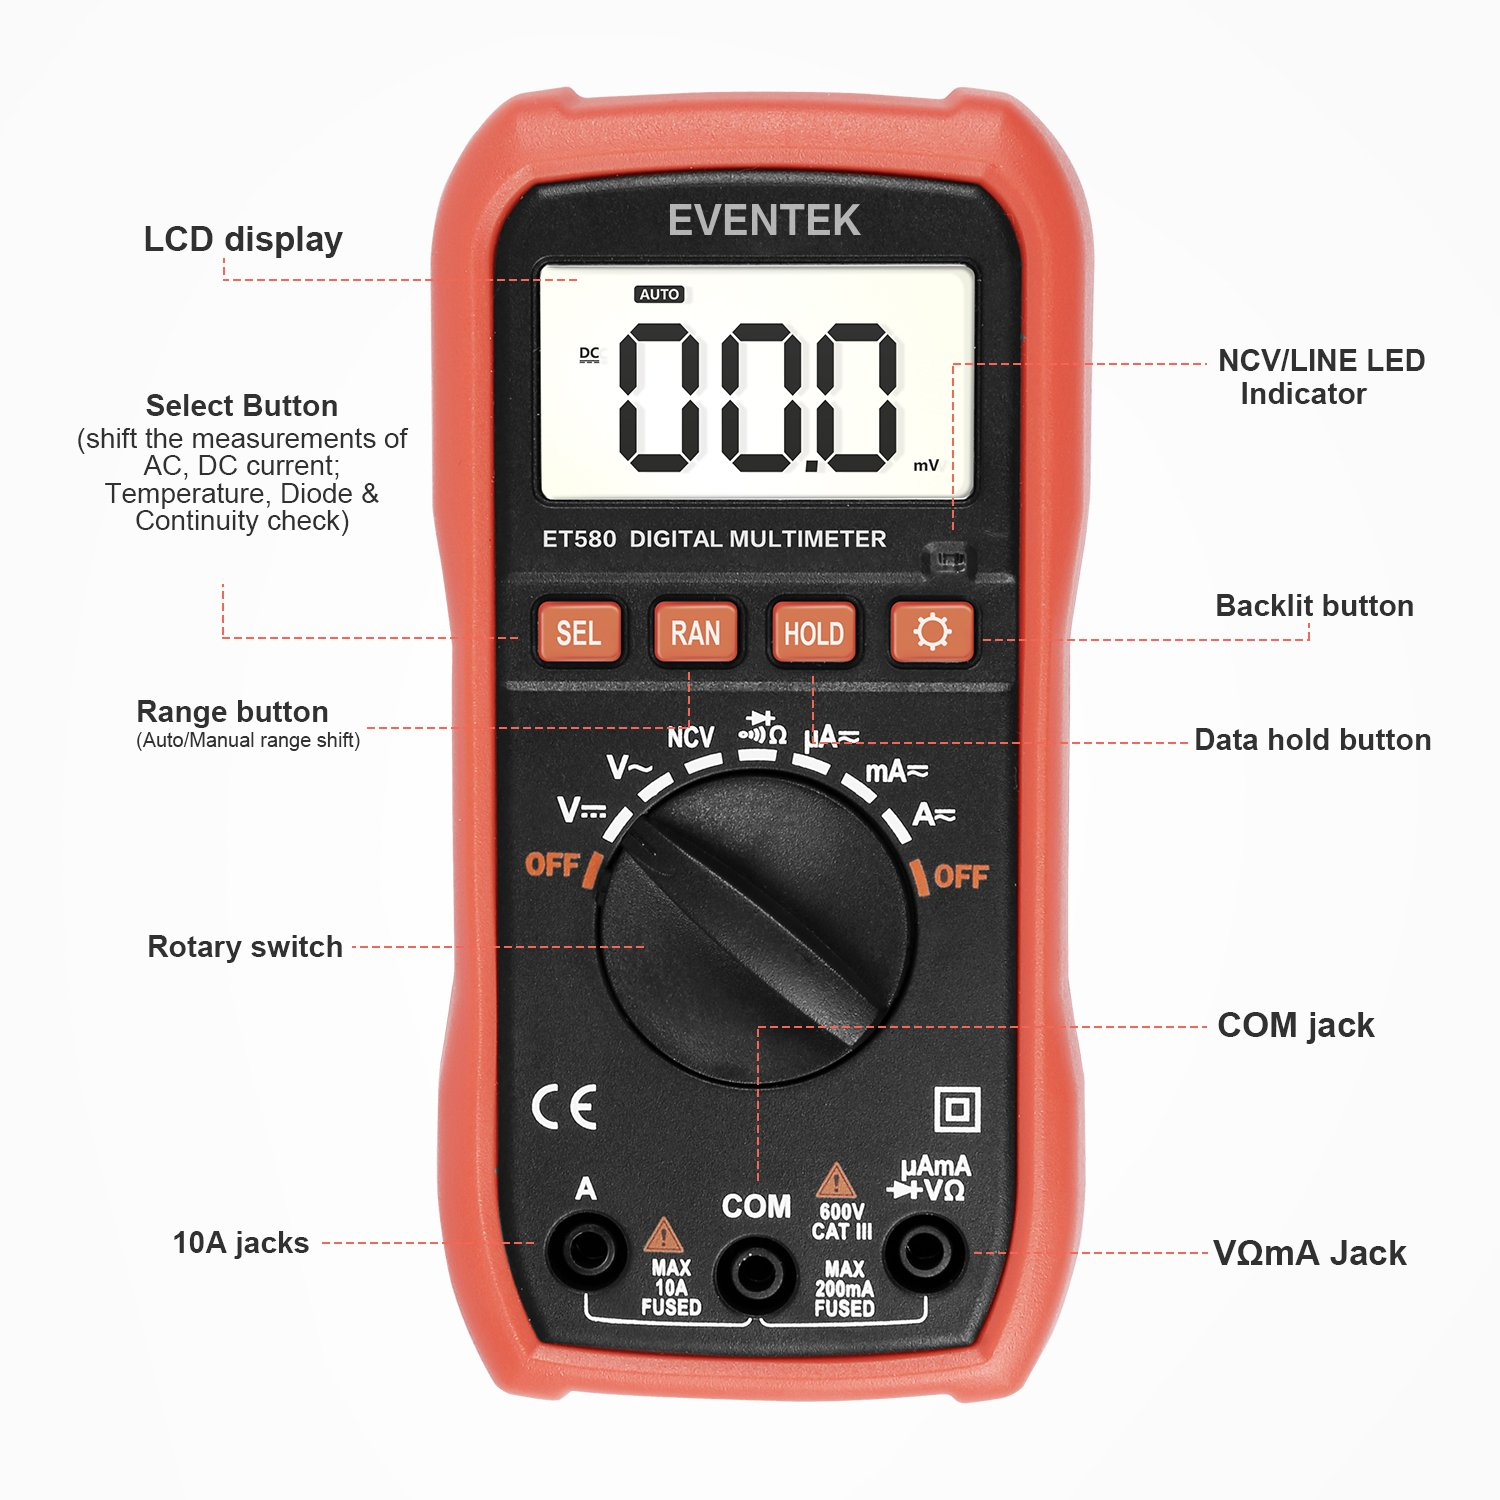 Digital Multimeter Eventek Et580 Multi Tester Auto Ranging With Ideal Receptacle Circuit Voltagecontinuity Pricefallscom Backlight For Measuring Ac Dc Current Voltage Resistance Continuity